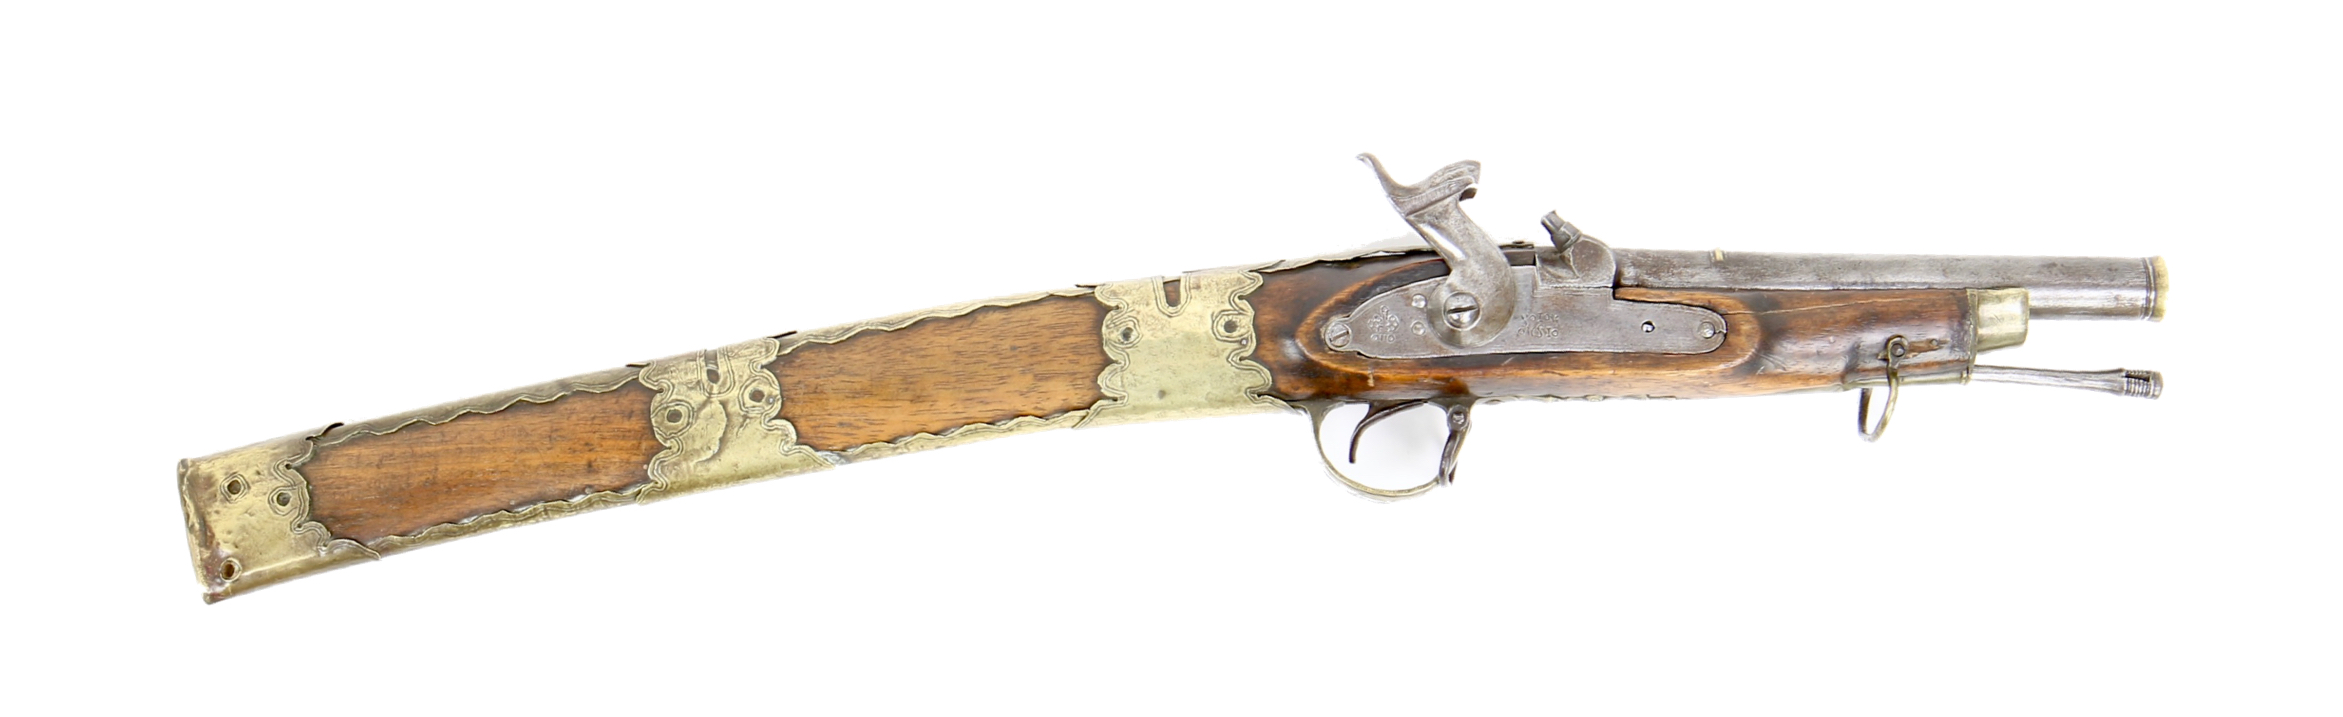 Burmese sword carbine